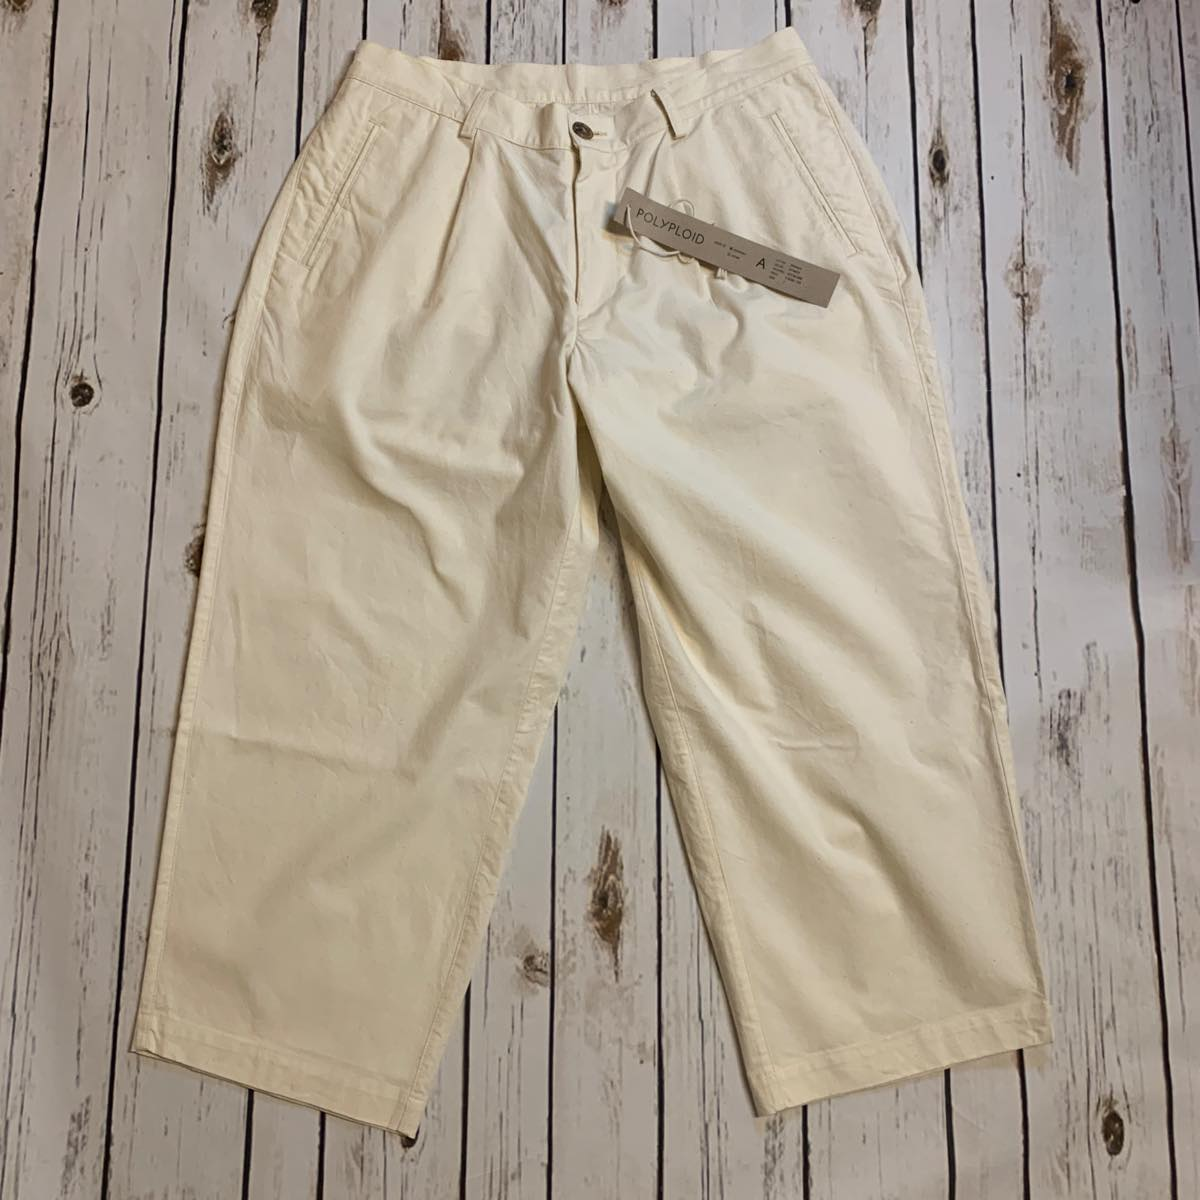 POLYPLOID(ポリプロイド) Wide Pants  Off White